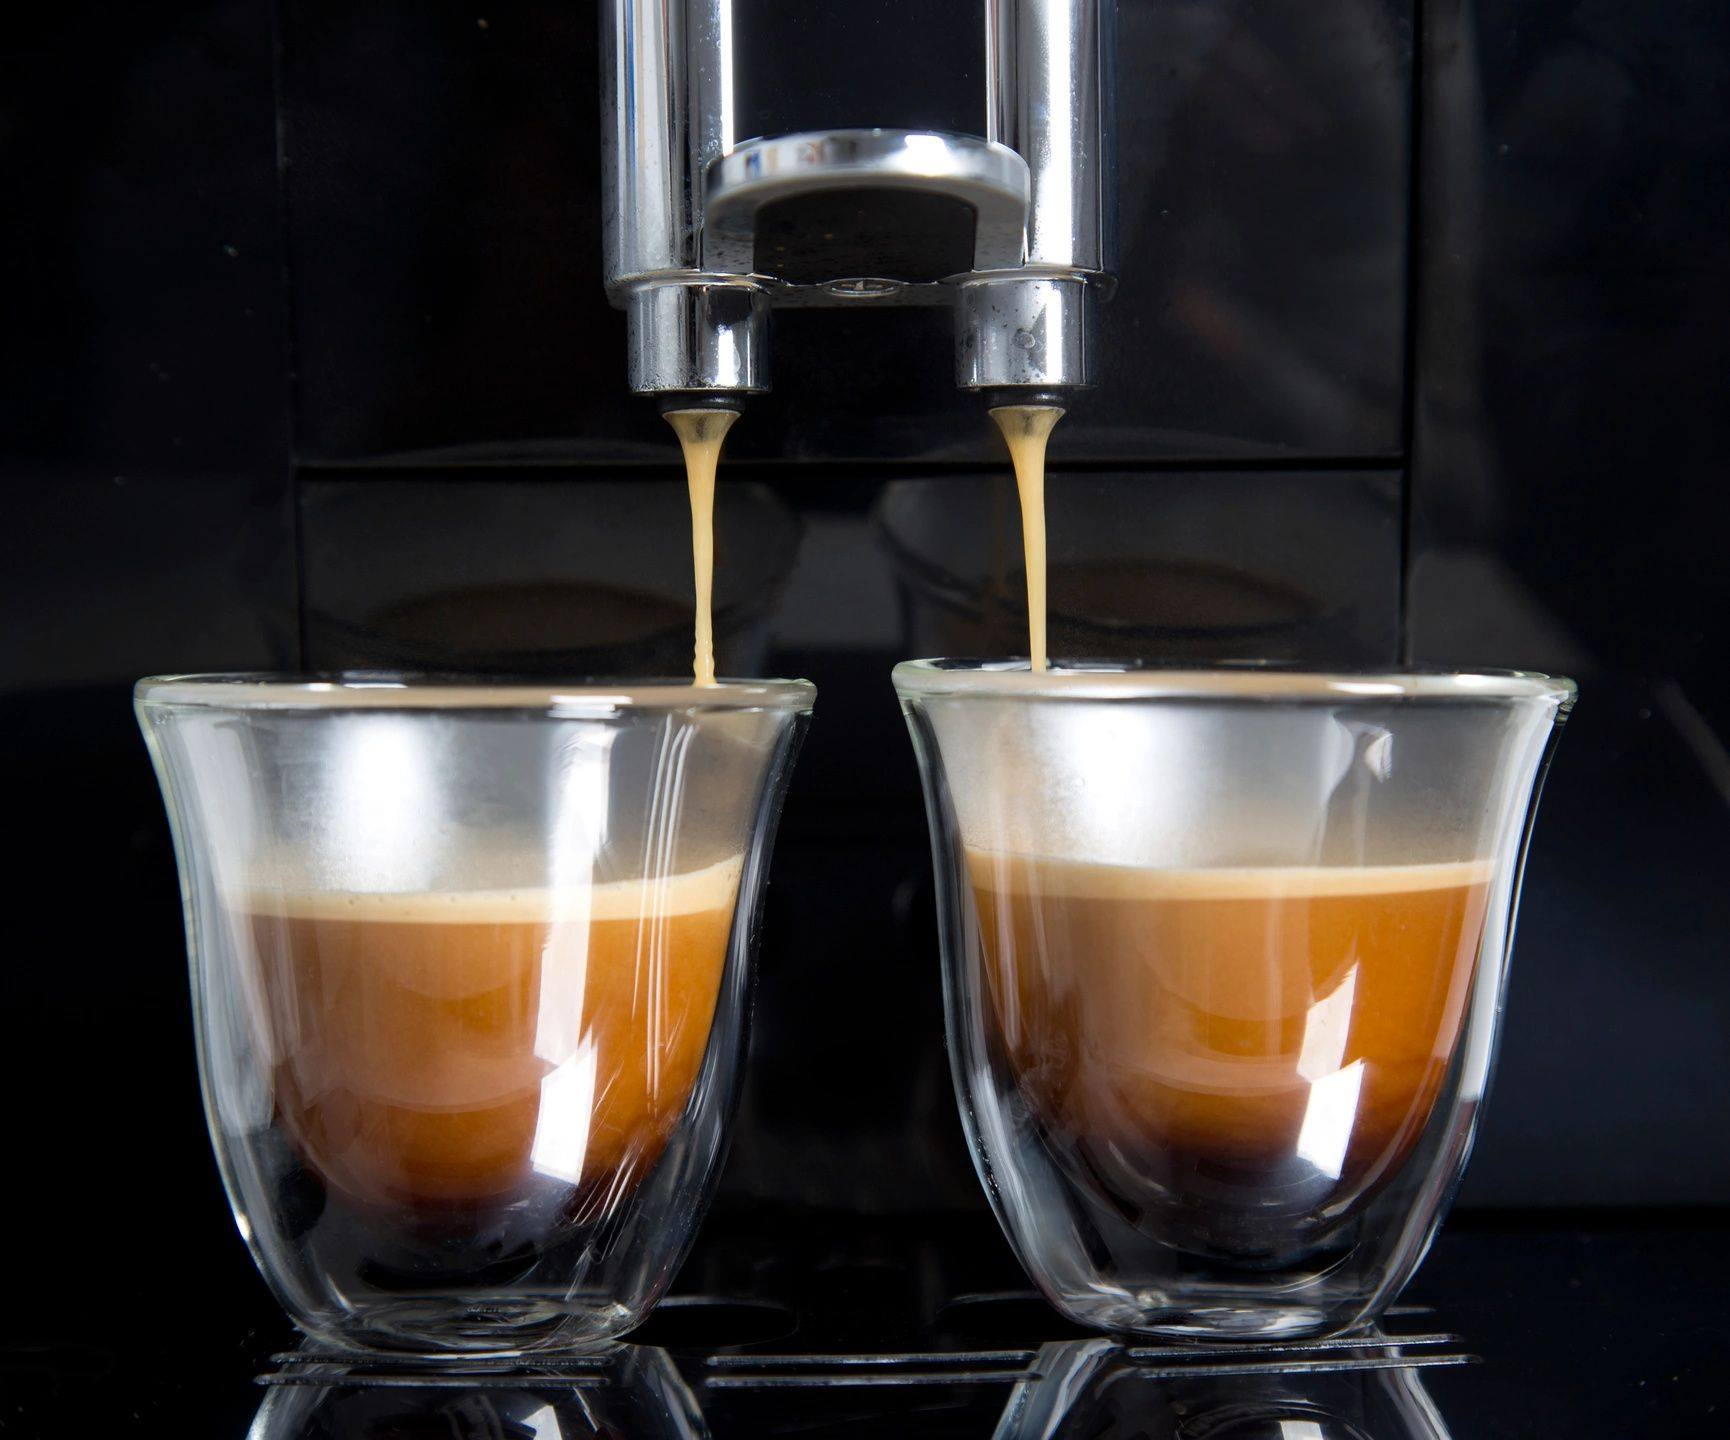 The Coffee Class to open soon